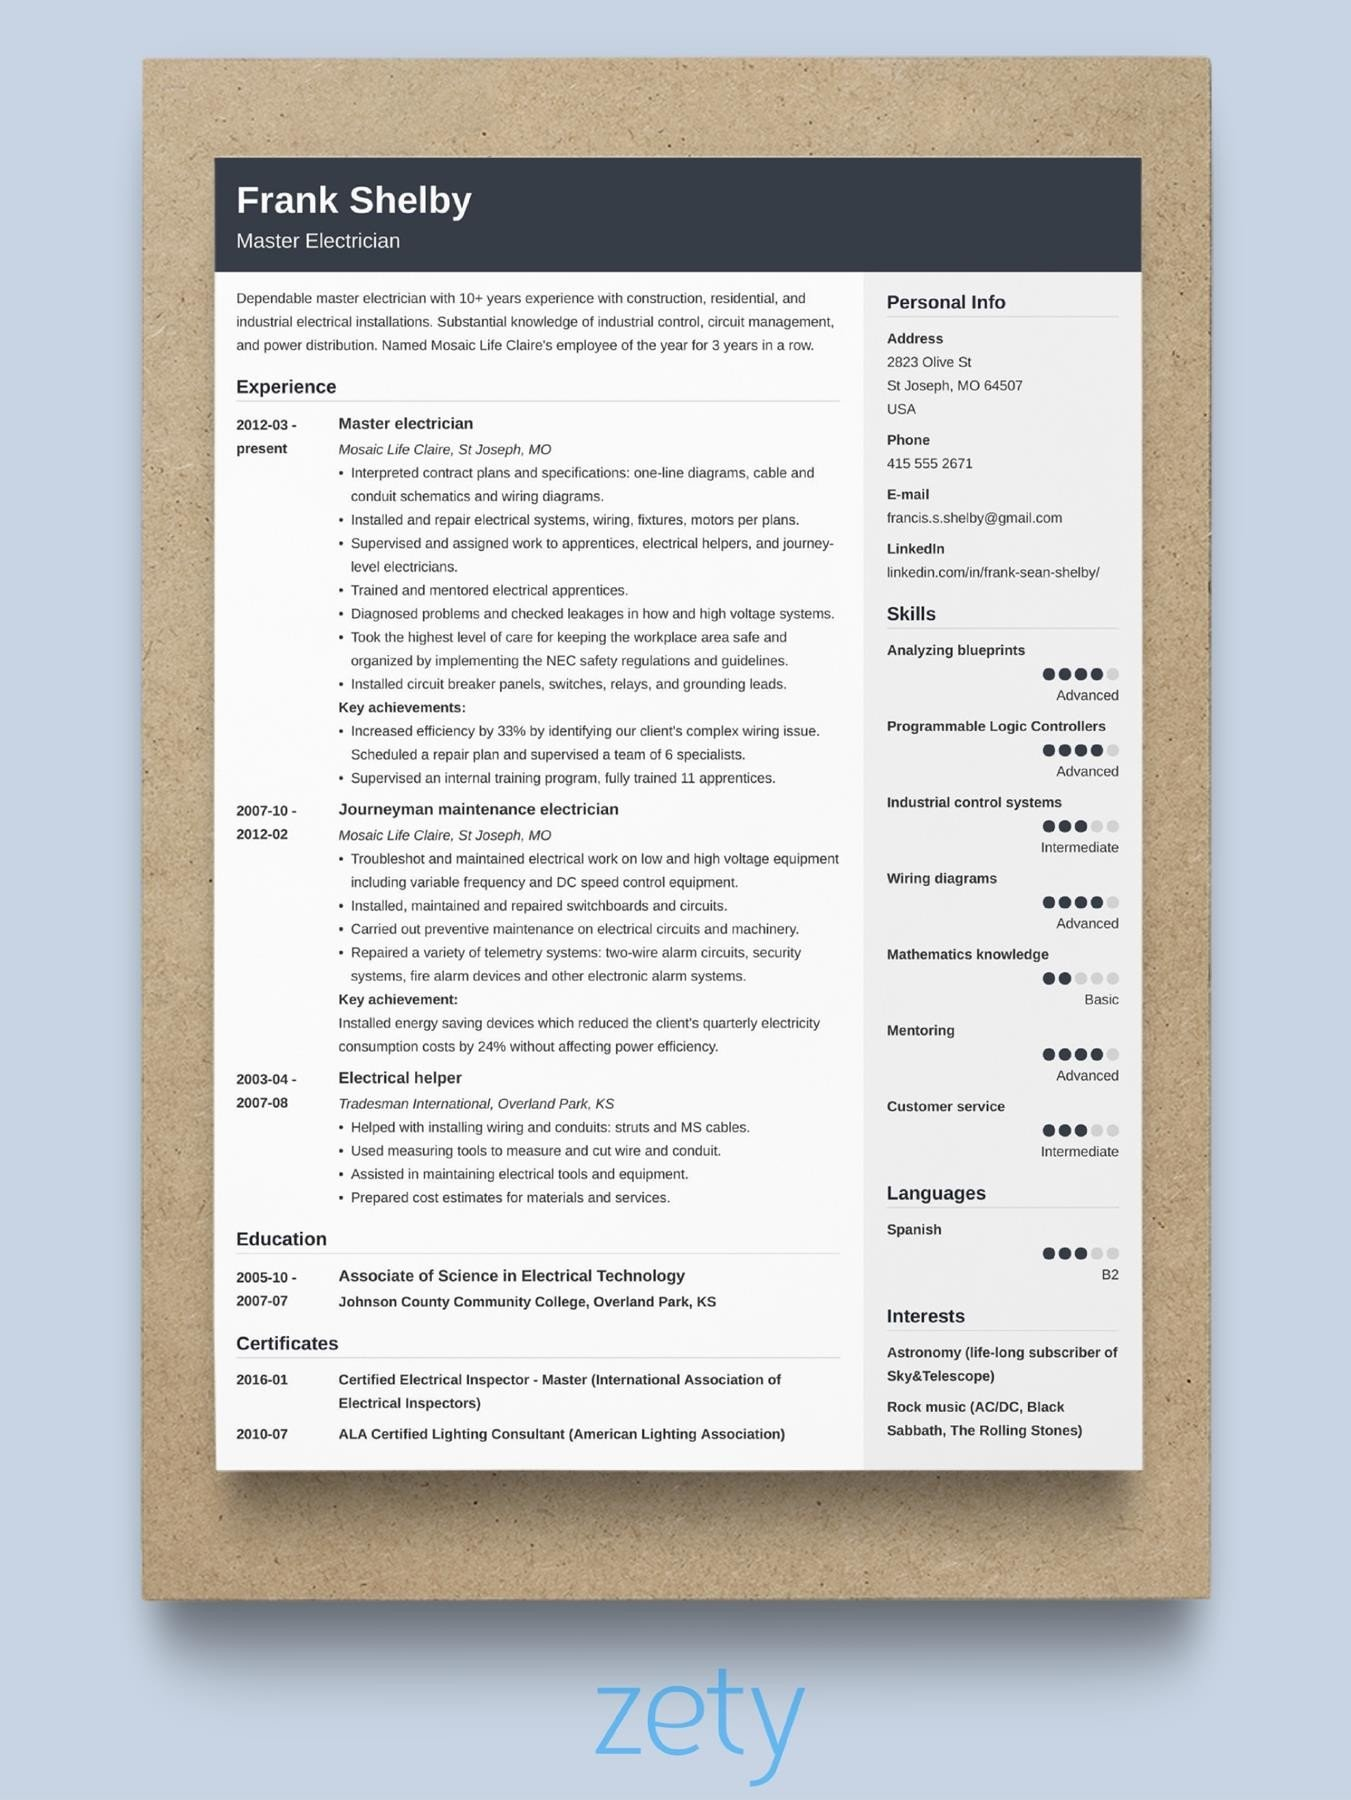 reverse-chronological resume